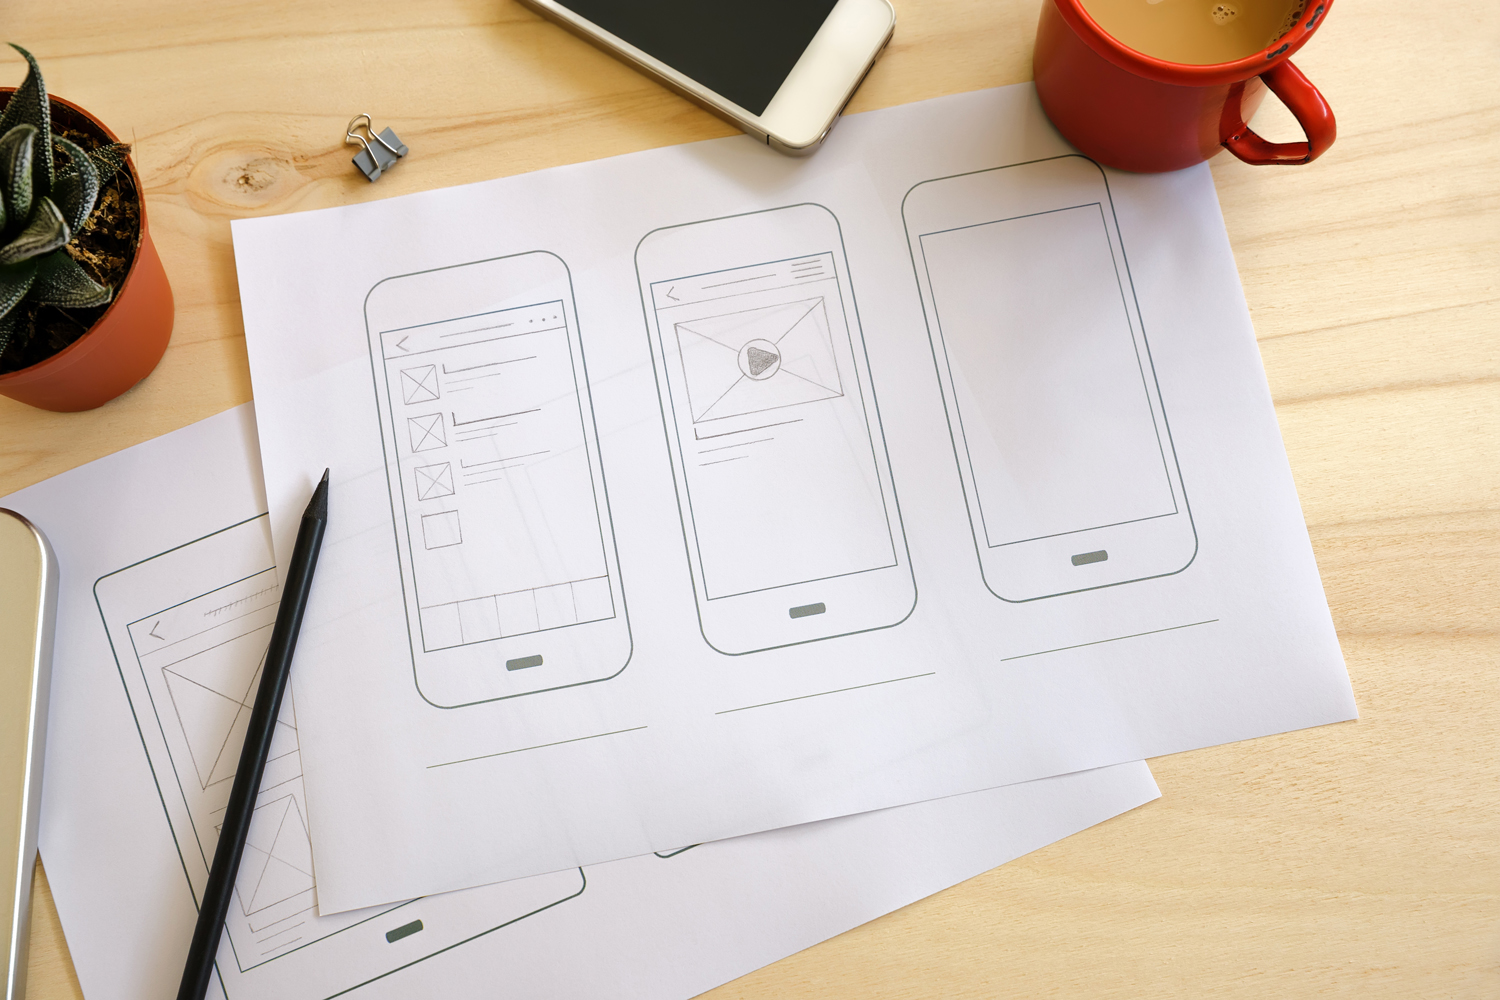 how to create an app - UI wireframe sketches